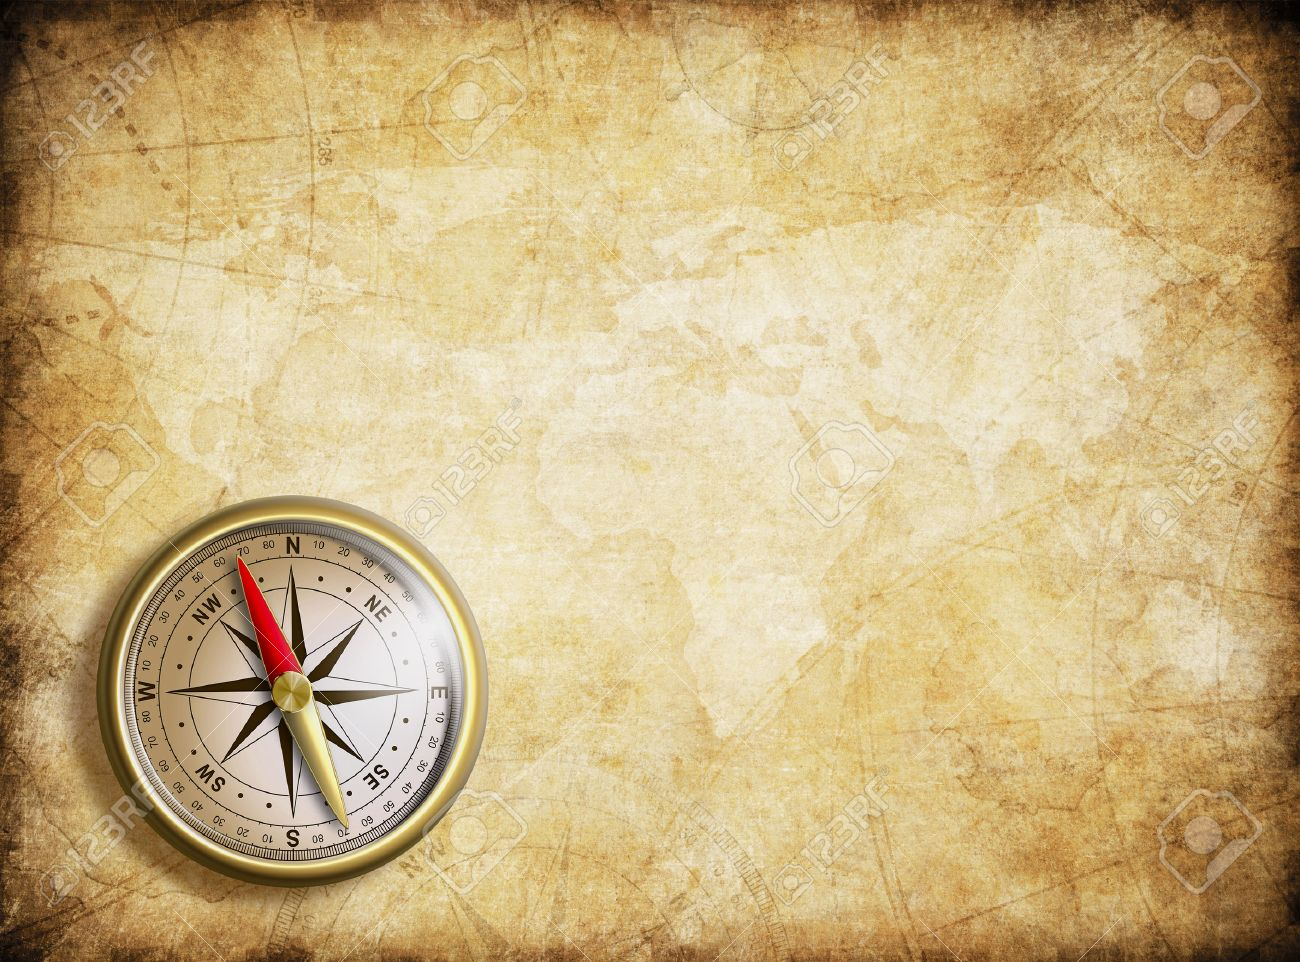 Aged Nautical Treasure Map And Compass Background Stock Photo 1300x962